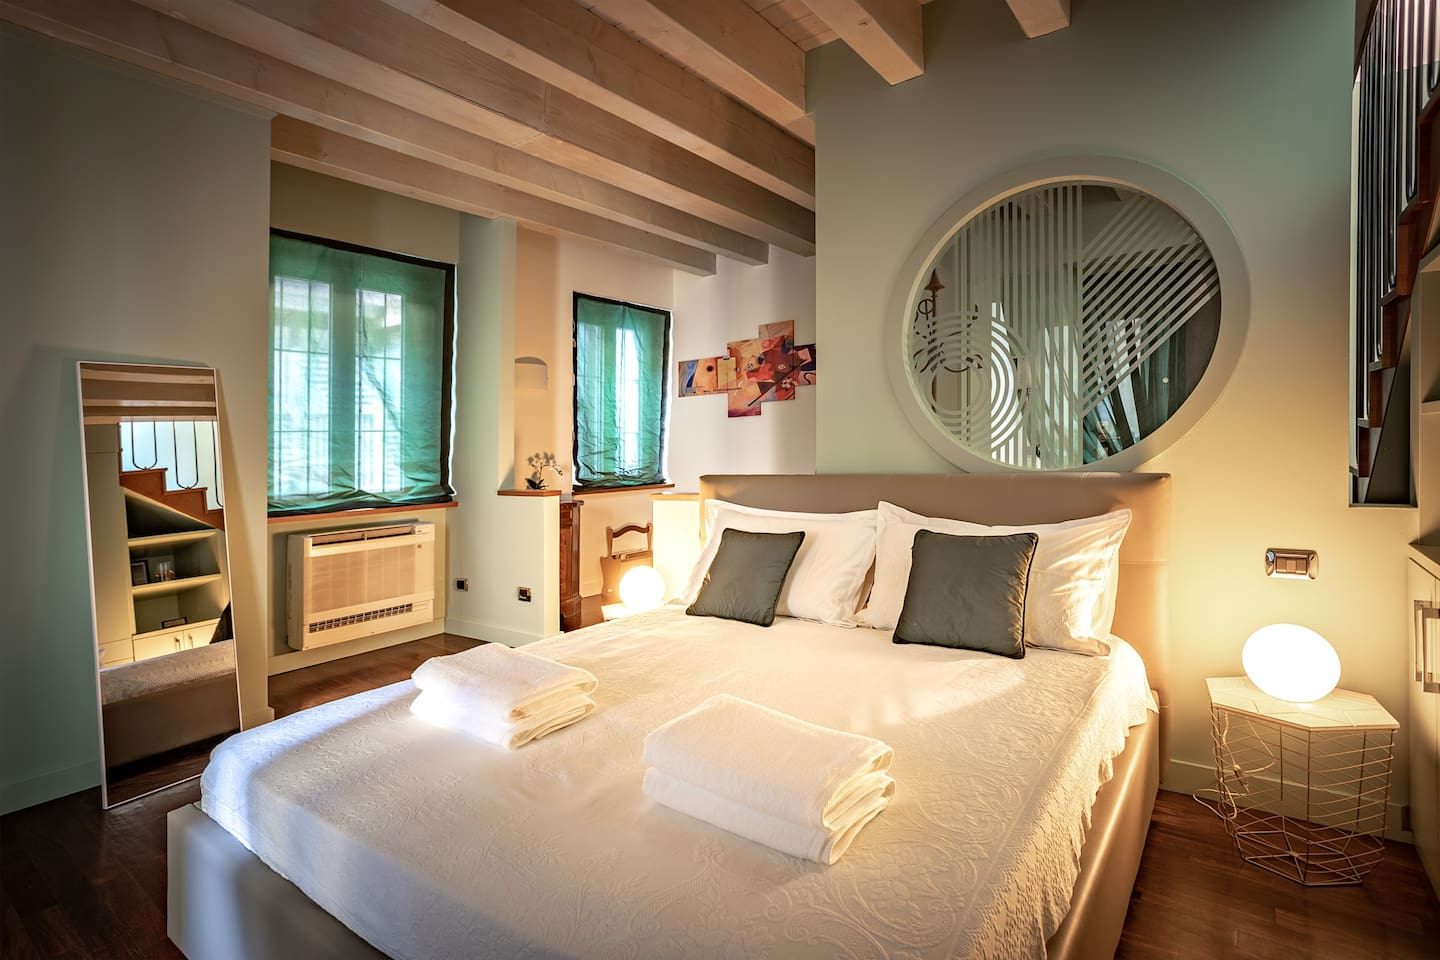 the a/c is located close to the bed, for a perfect temperature in both winter and summer